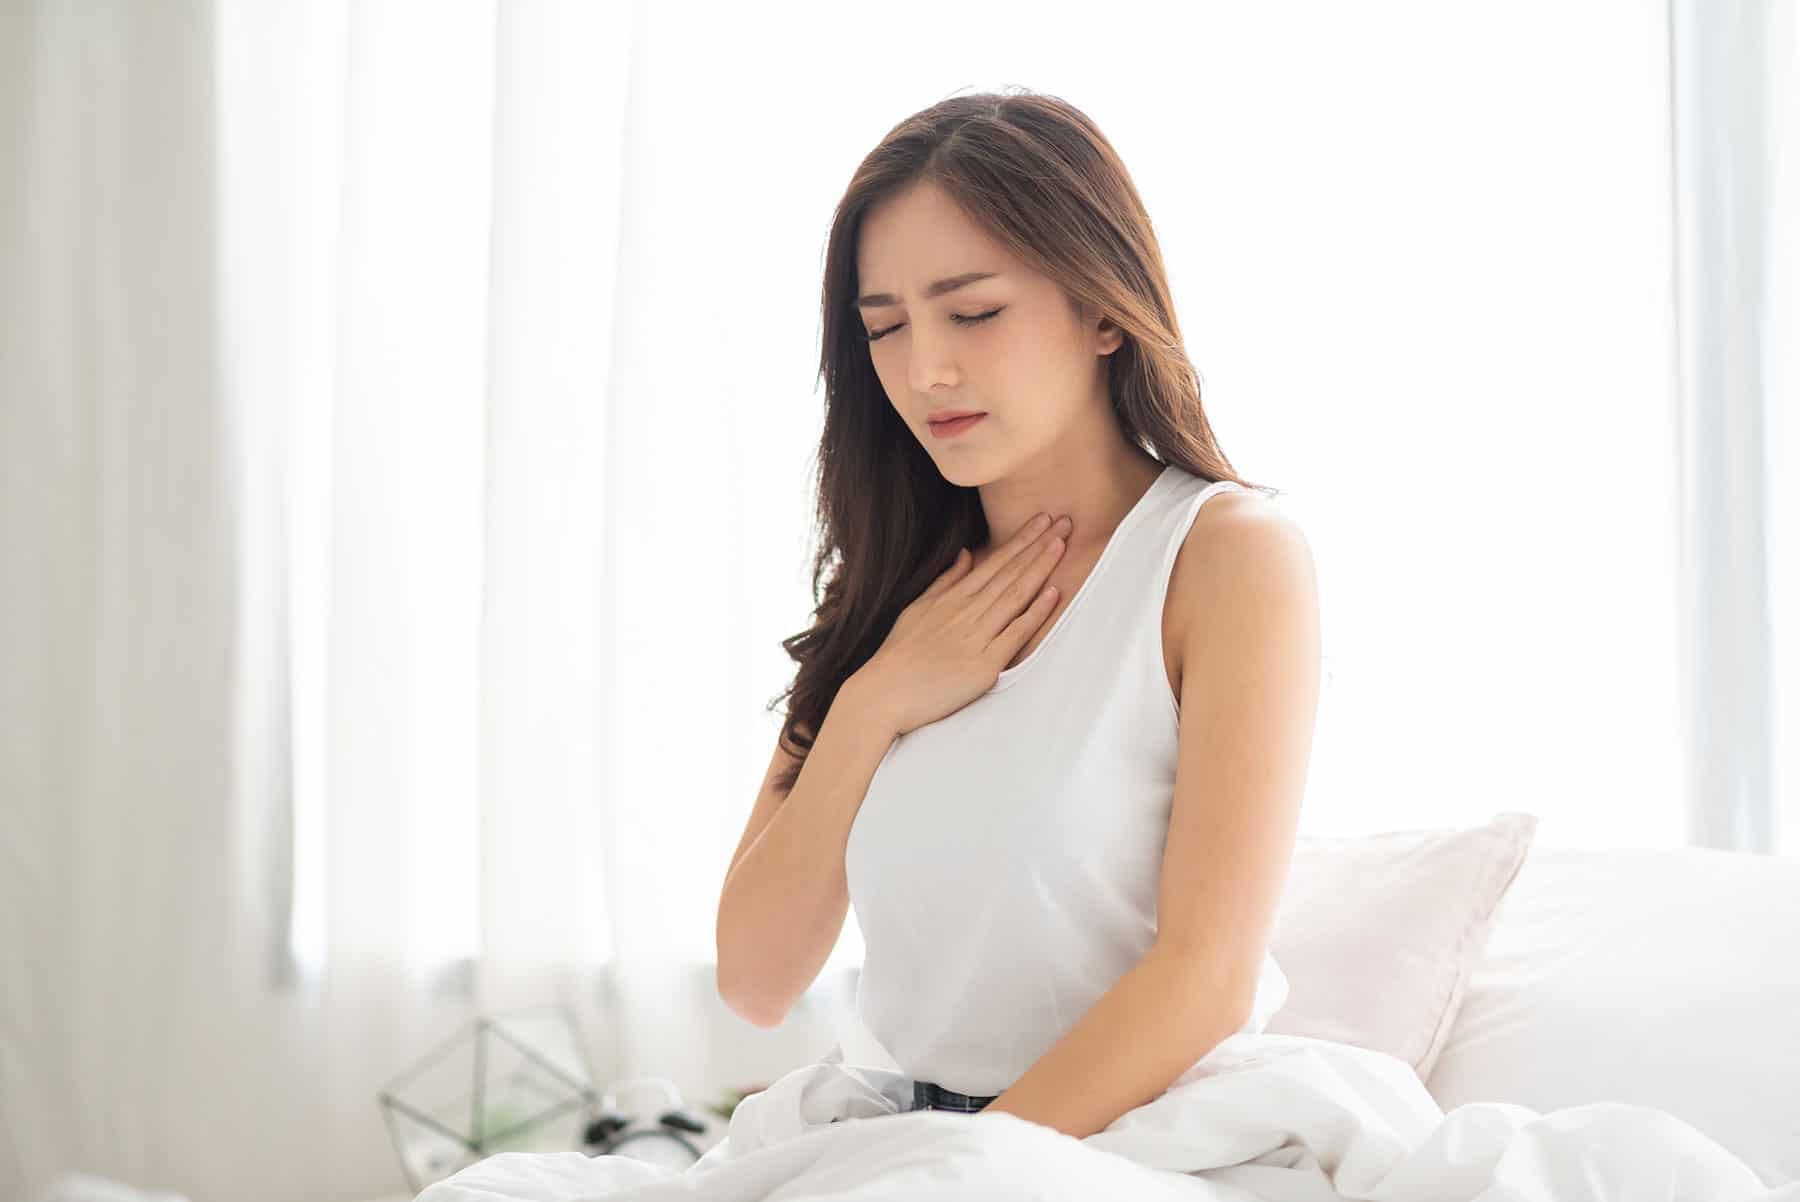 woman-suffering-from-acid-reflux